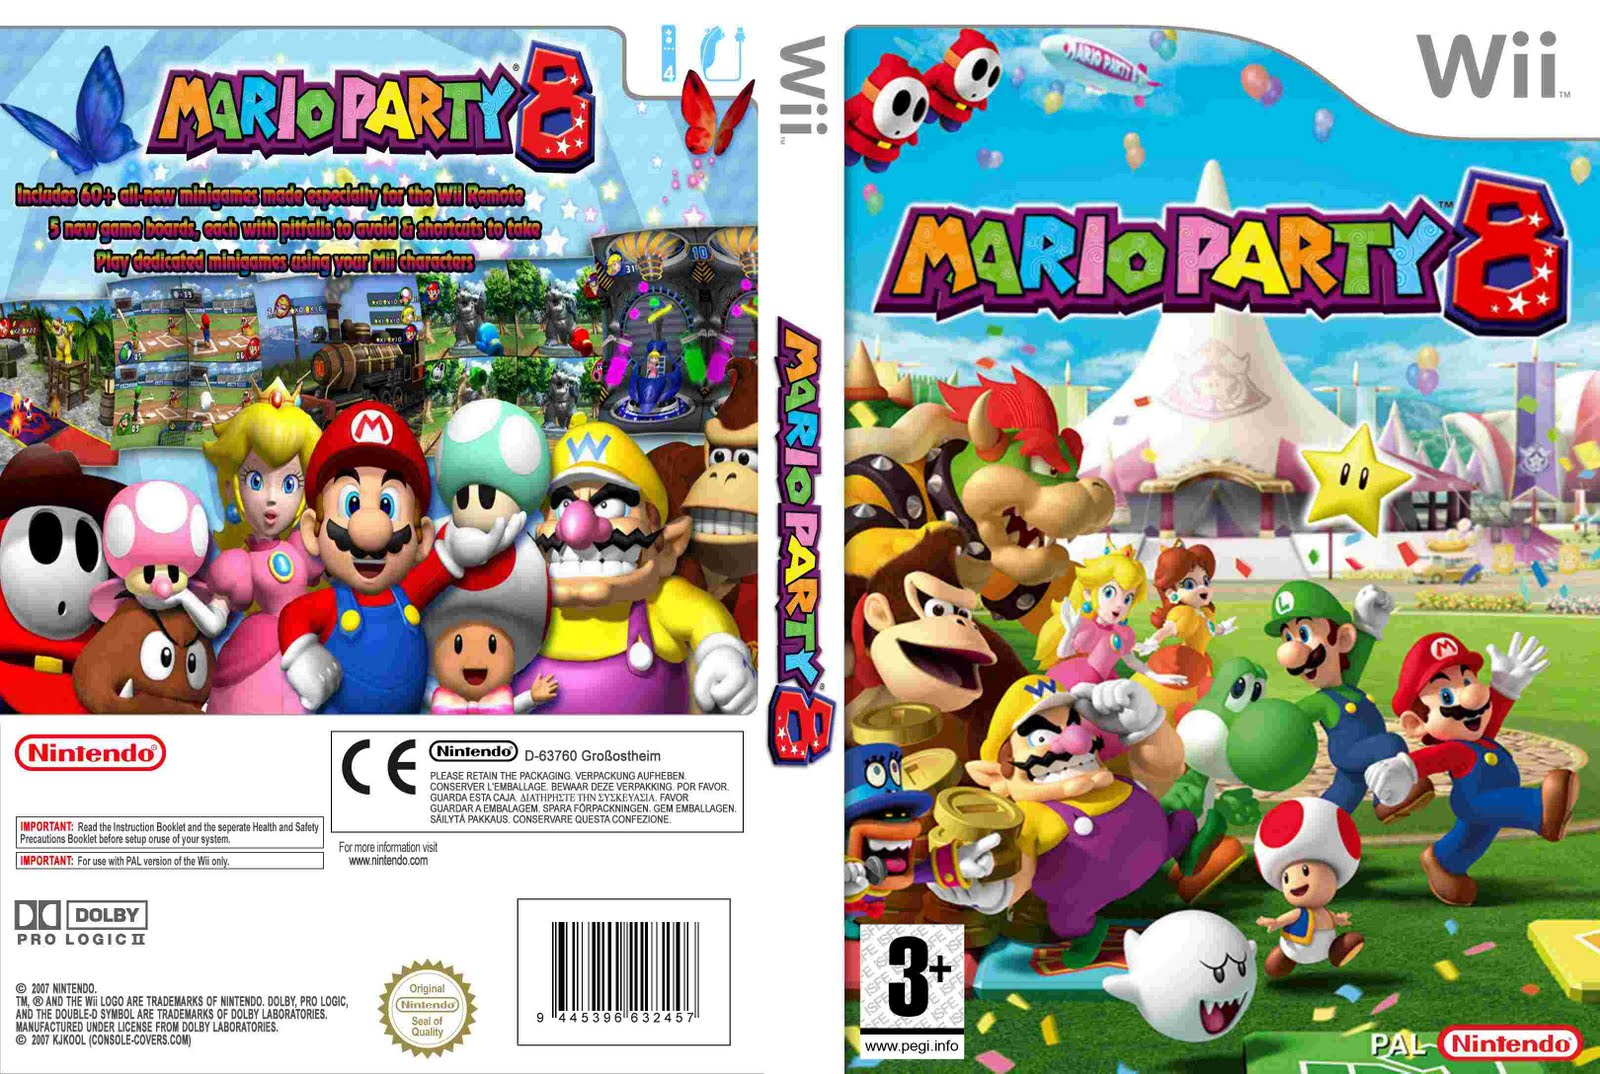 mario party 8 full game free pc download play download mario party 8 for android blogs. Black Bedroom Furniture Sets. Home Design Ideas